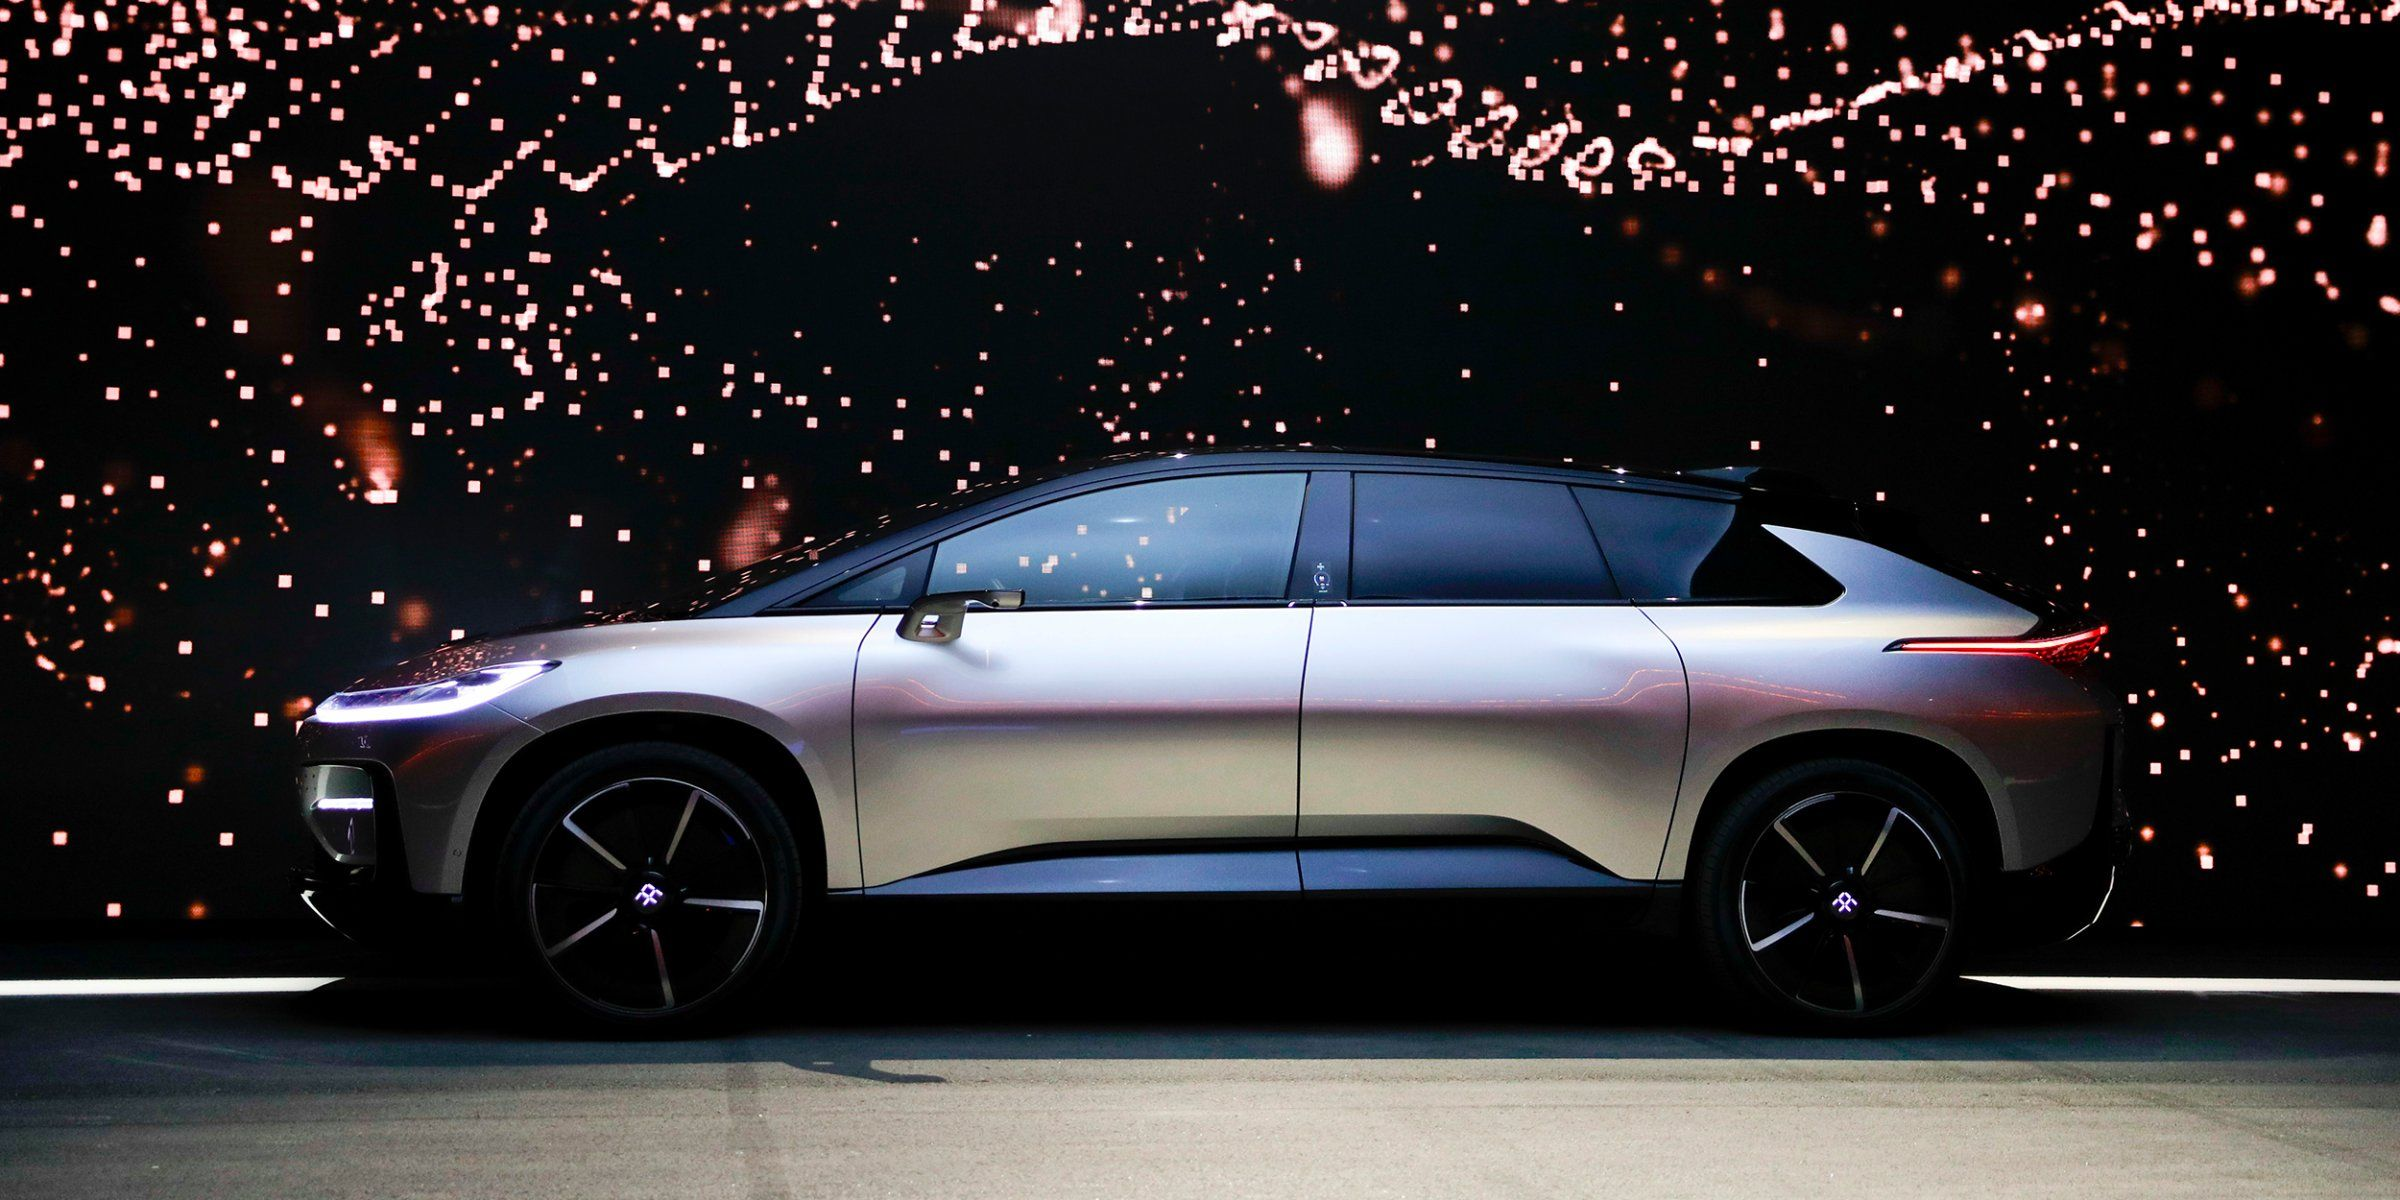 Here S Everything We Know So Far About Faraday Future S Ff91 Electric Self Driving Car Faraday Future Future Car Future Electric Cars